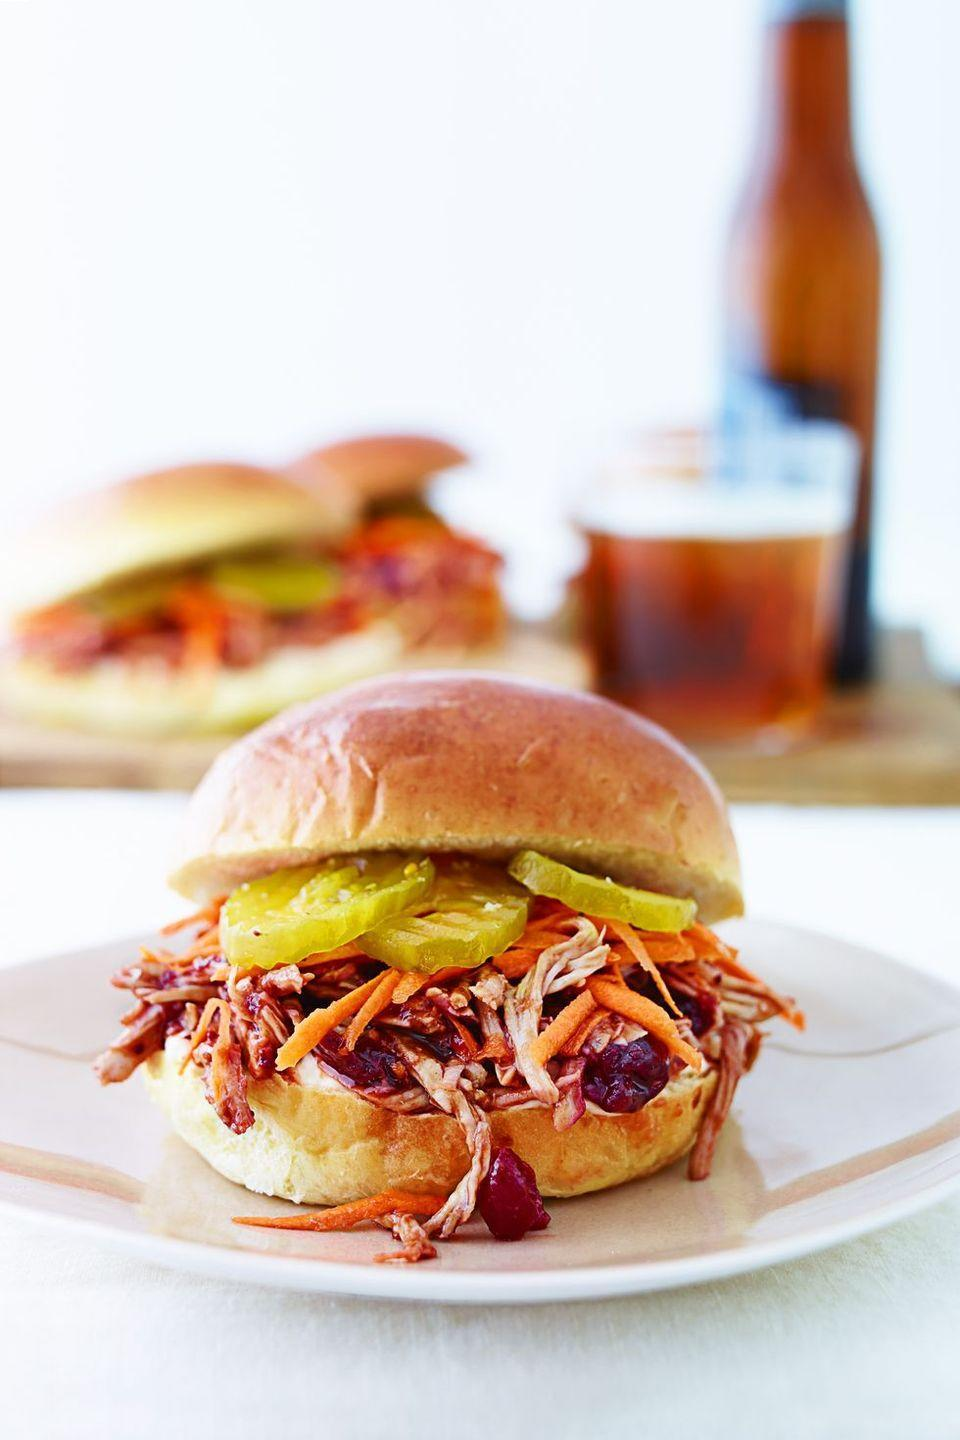 """<p>Transform leftover cranberry sauce into a tangy-sweet BBQ sauce you can slather all over pulled turkey and serve for lunch <em>or </em>dinner.</p><p><em><a href=""""https://goodhousekeeping.com/food-recipes/a11853/pulled-cran-turkey-sandwiches-recipe-ghk1114/"""" rel=""""nofollow noopener"""" target=""""_blank"""" data-ylk=""""slk:Get the recipe for Pulled Cran-Turkey Sandwiches »"""" class=""""link rapid-noclick-resp"""">Get the recipe for Pulled Cran-Turkey Sandwiches »</a></em><br></p>"""